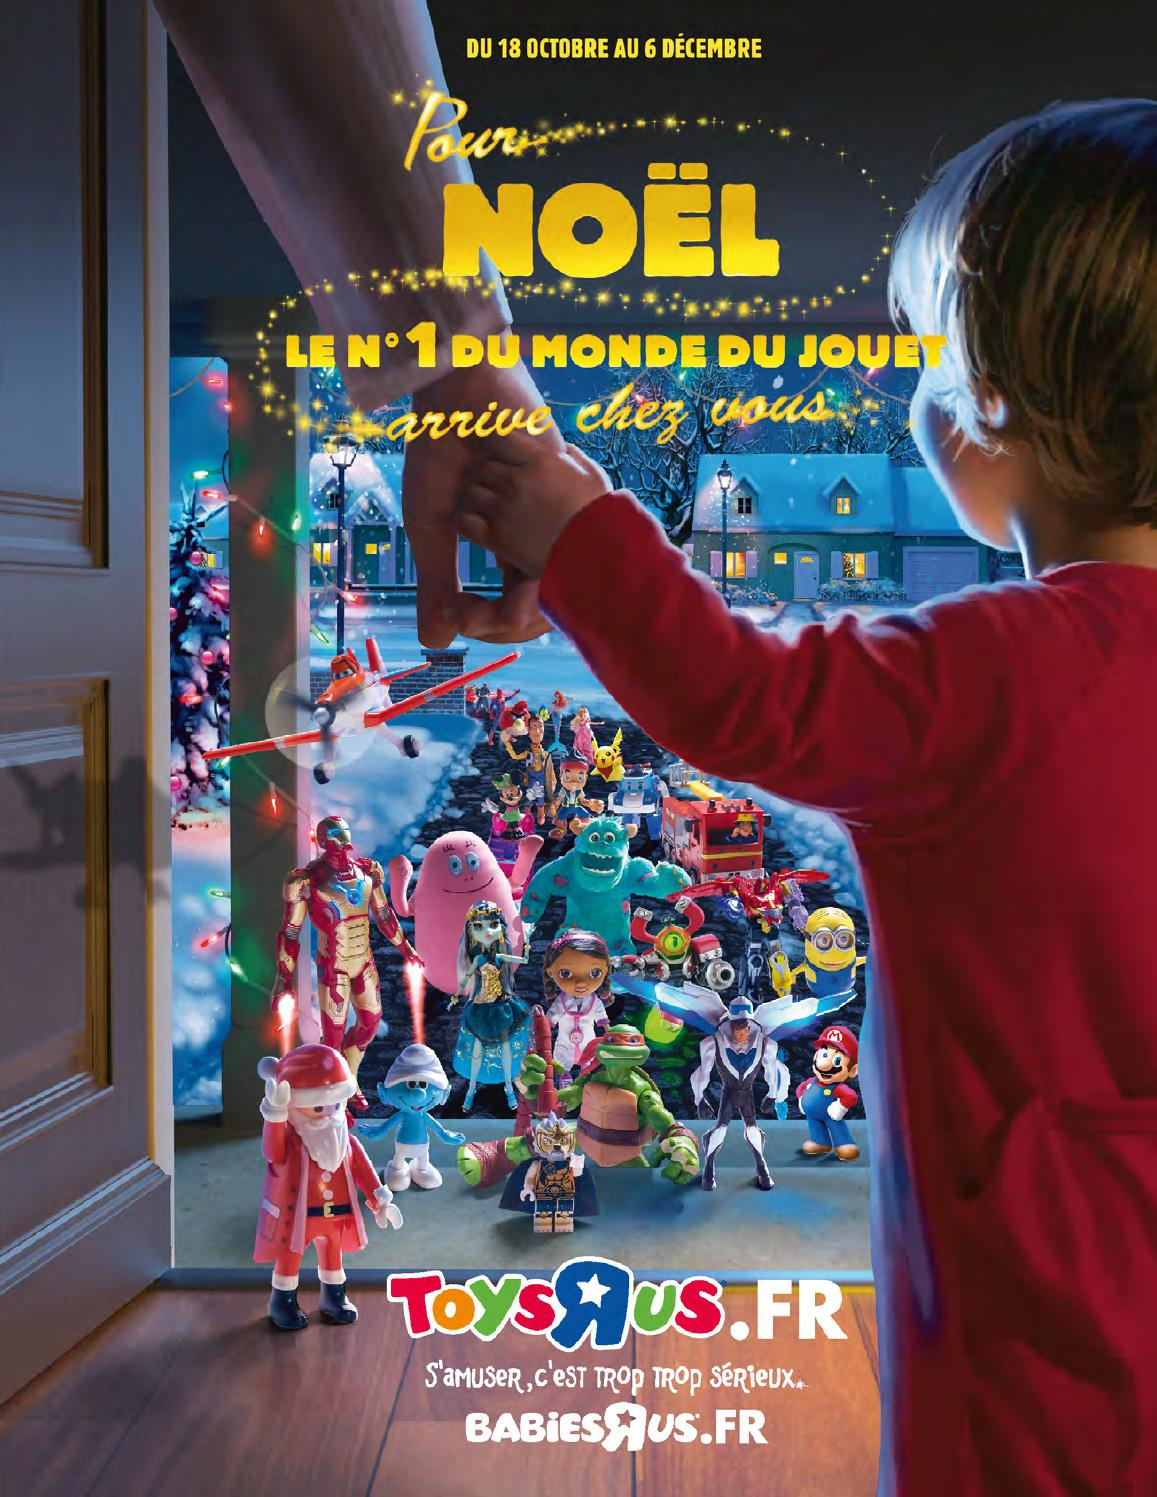 Catalogue Toysrus - 18.10-6.12.2013 By Joe Monroe - Issuu tout Piscine A Balle Toysrus